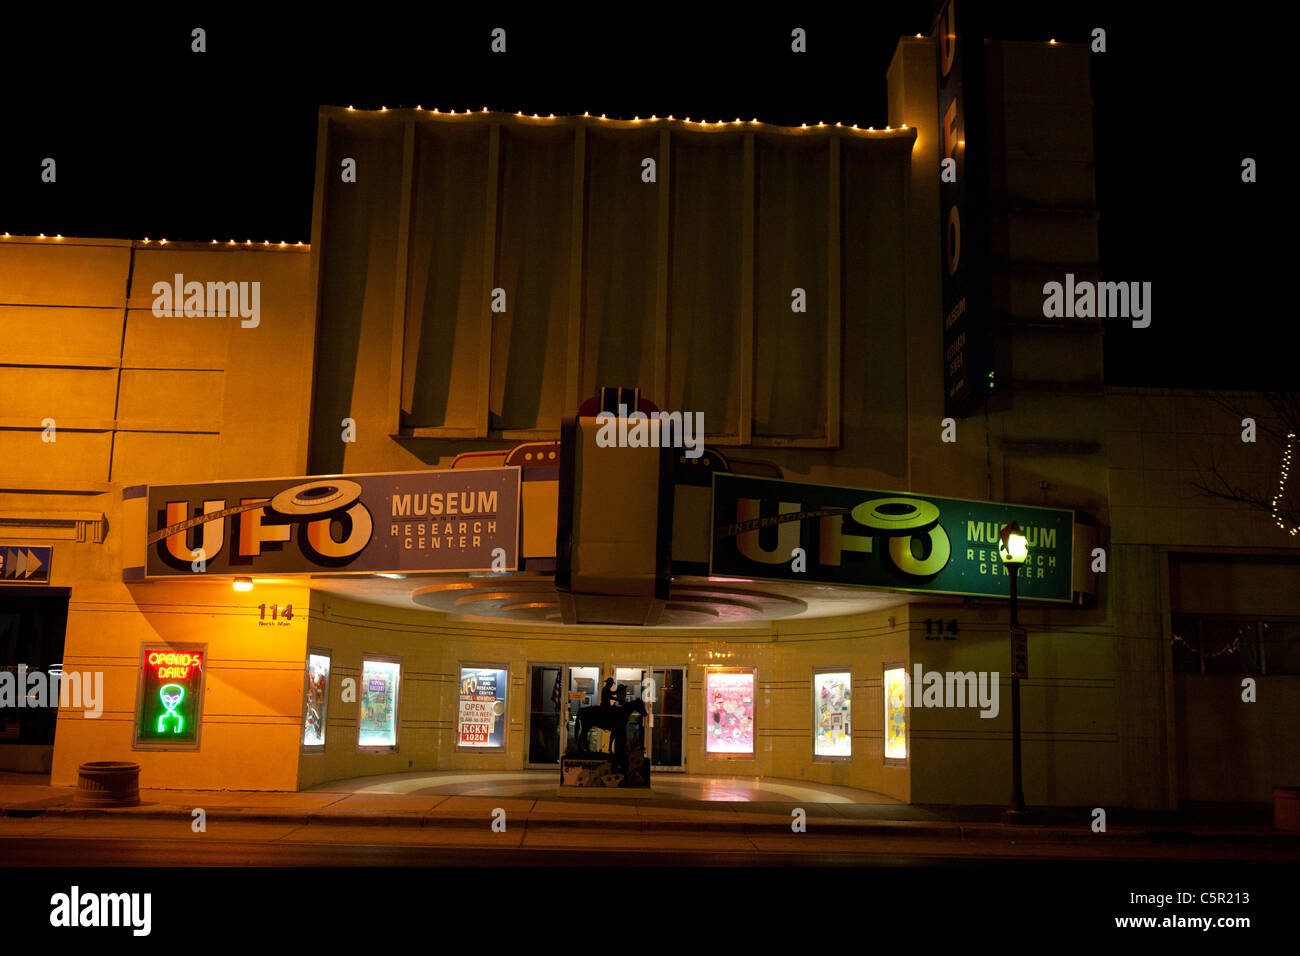 Exterior of the UFO Museum and Research Center at night, Roswell, New Mexico, United States of America - Stock Image